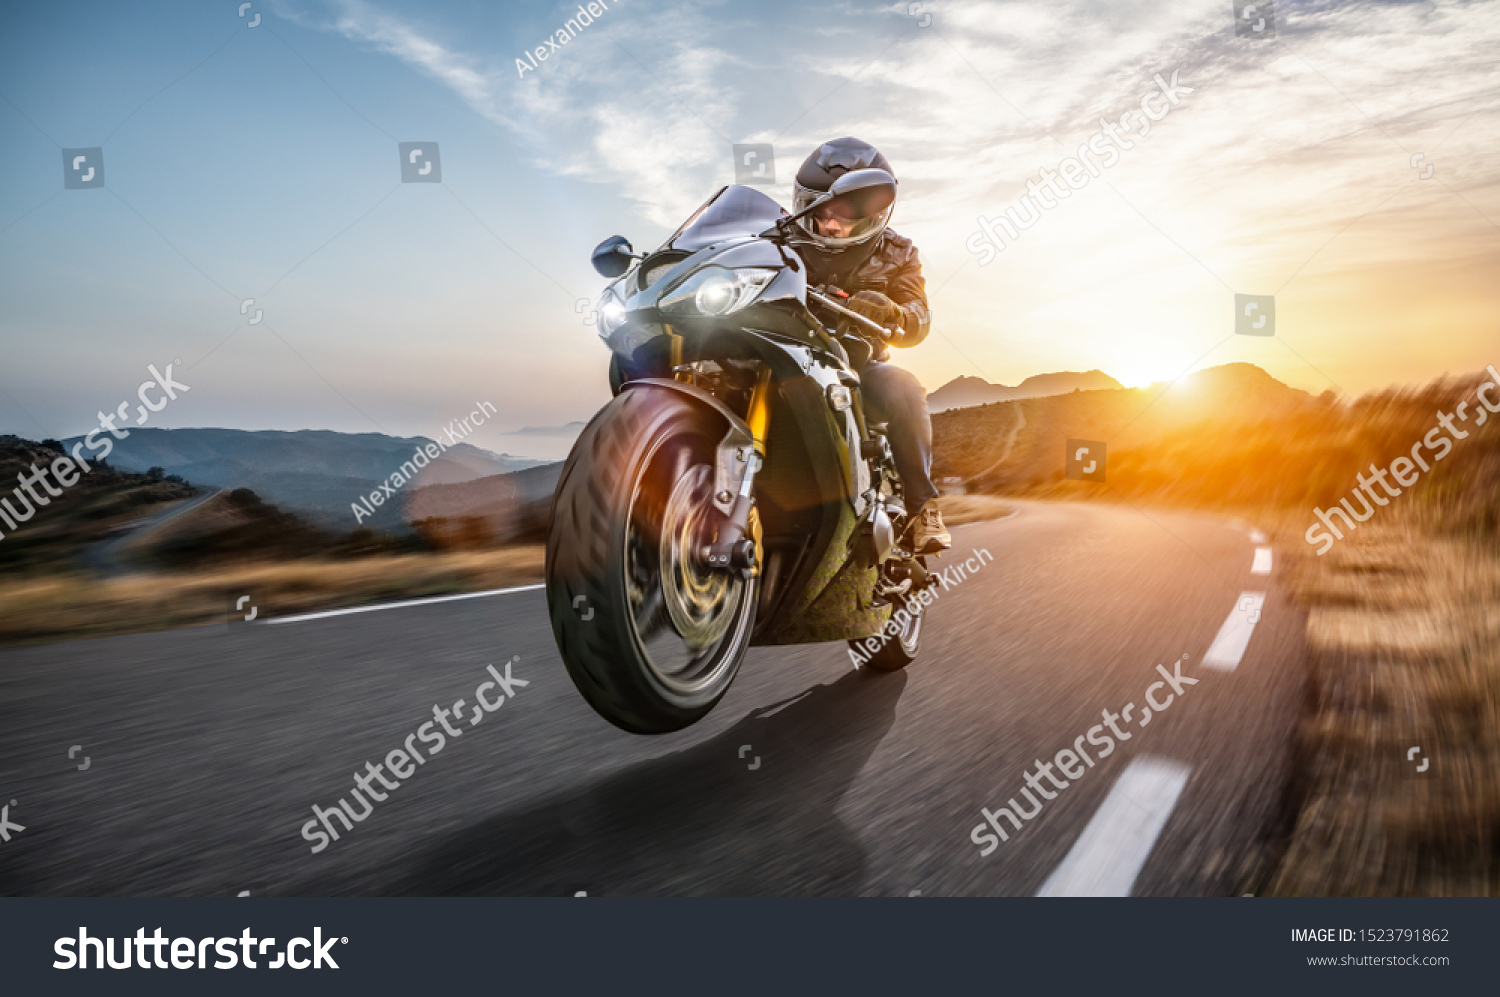 Fast Motorcycle on the coast road riding. having fun driving the empty highway on a motorbike tour journey. copyspace for your individual text. #1523791862